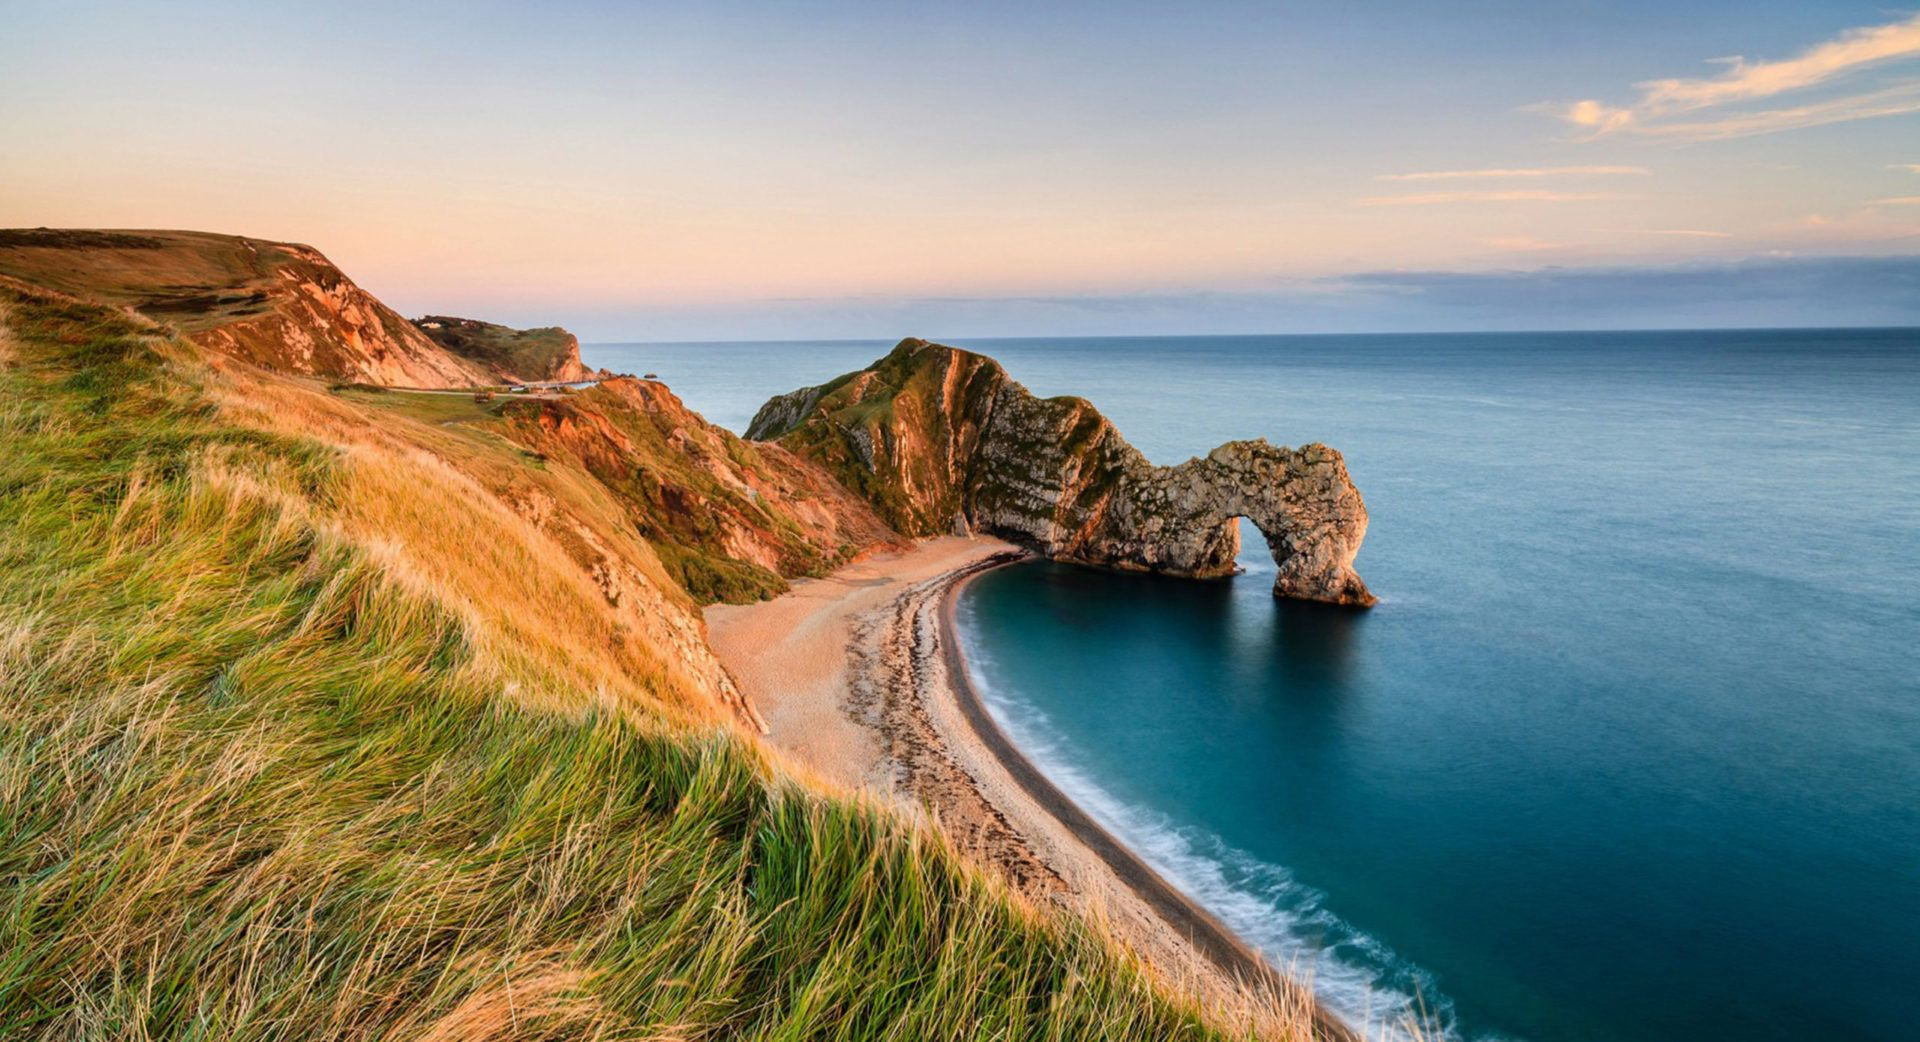 Fossils and frustration — bringing a breath of fresh air to the Jurassic Coast Trust